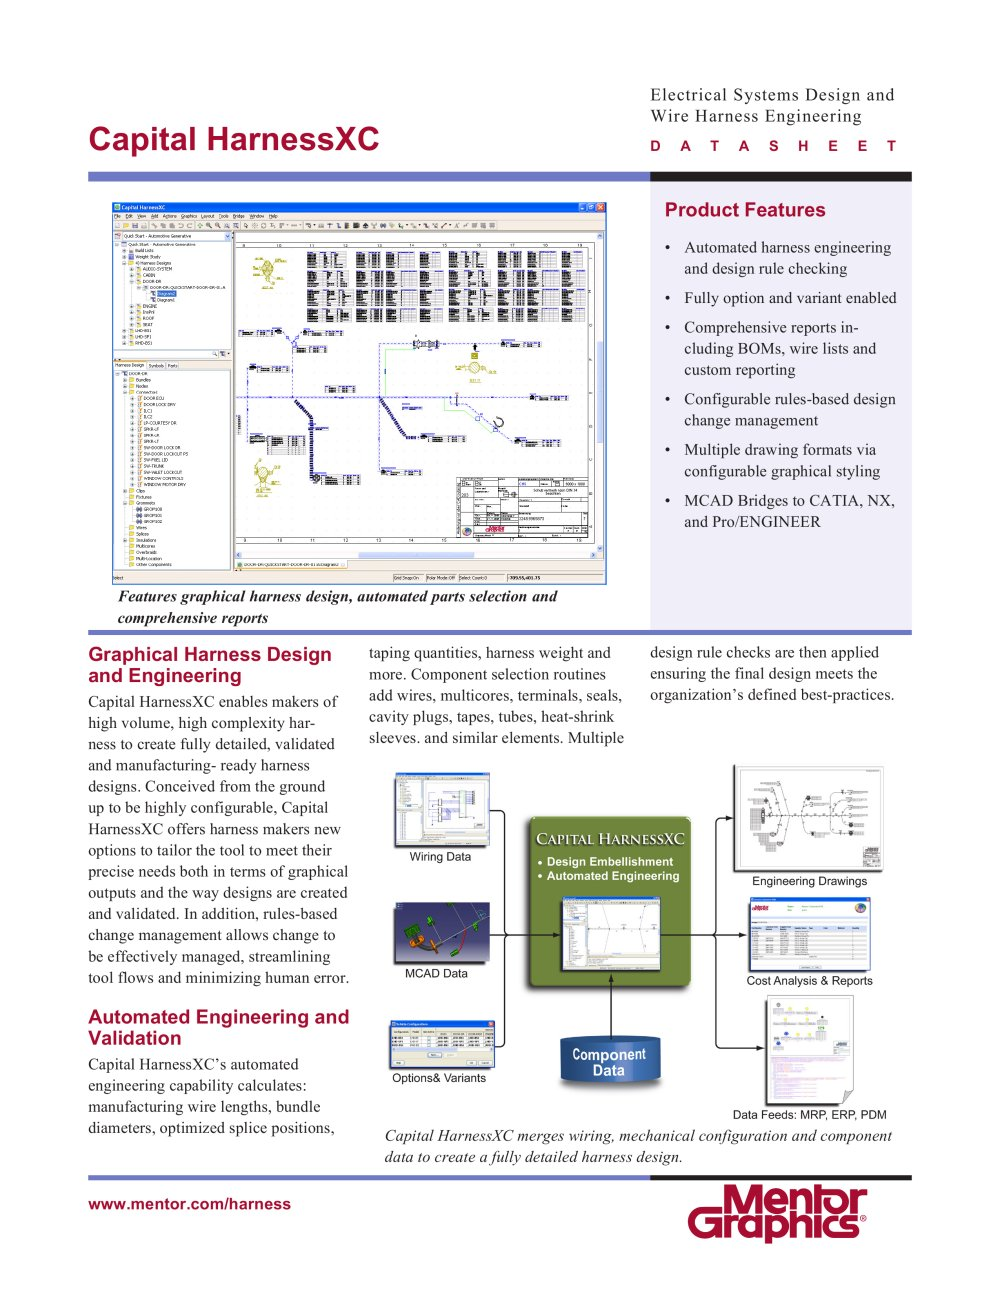 Capital HarnessXC - Mentor Graphics - PDF Catalogue | Technical ...